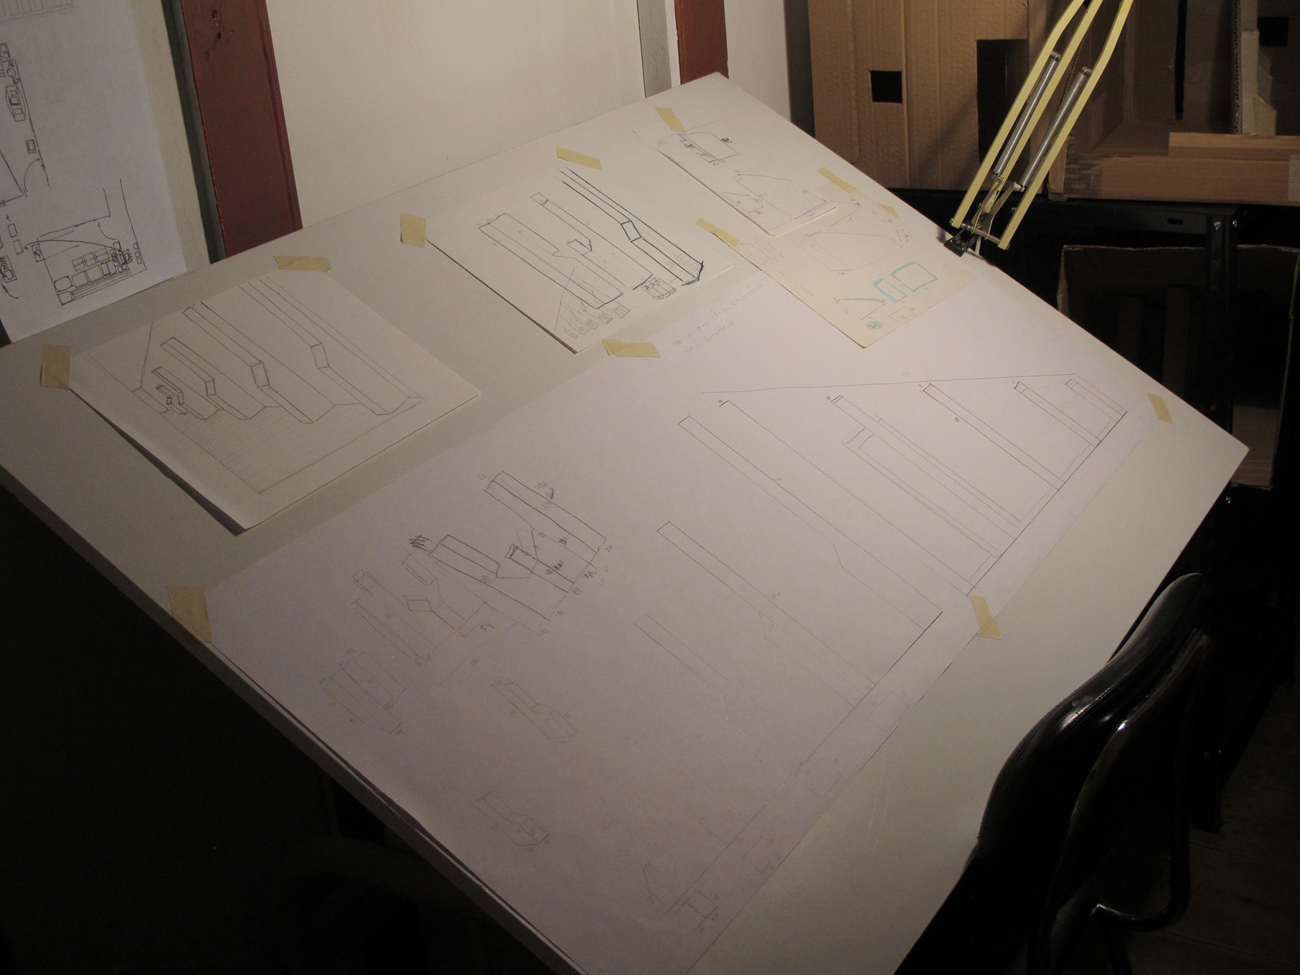 drawings on table